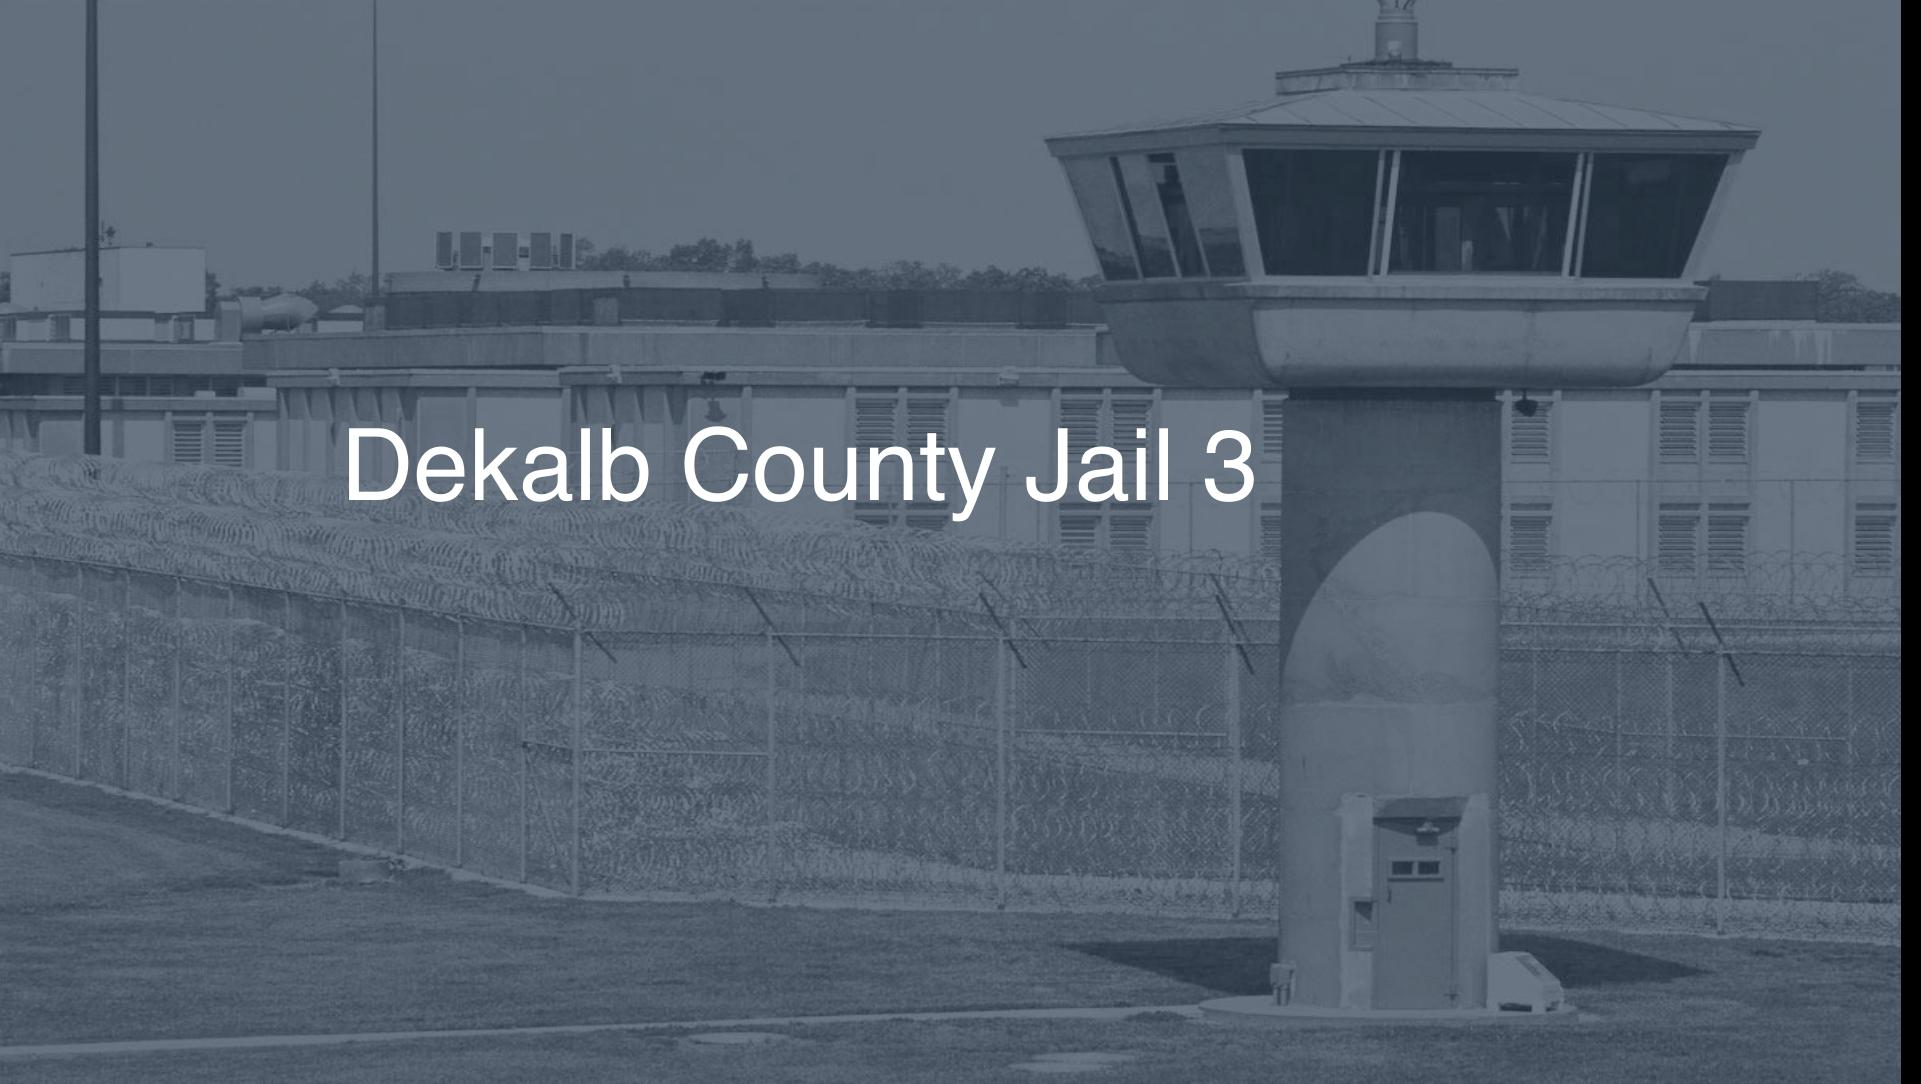 DeKalb County Jail   Pigeonly - Inmate Search, Locate